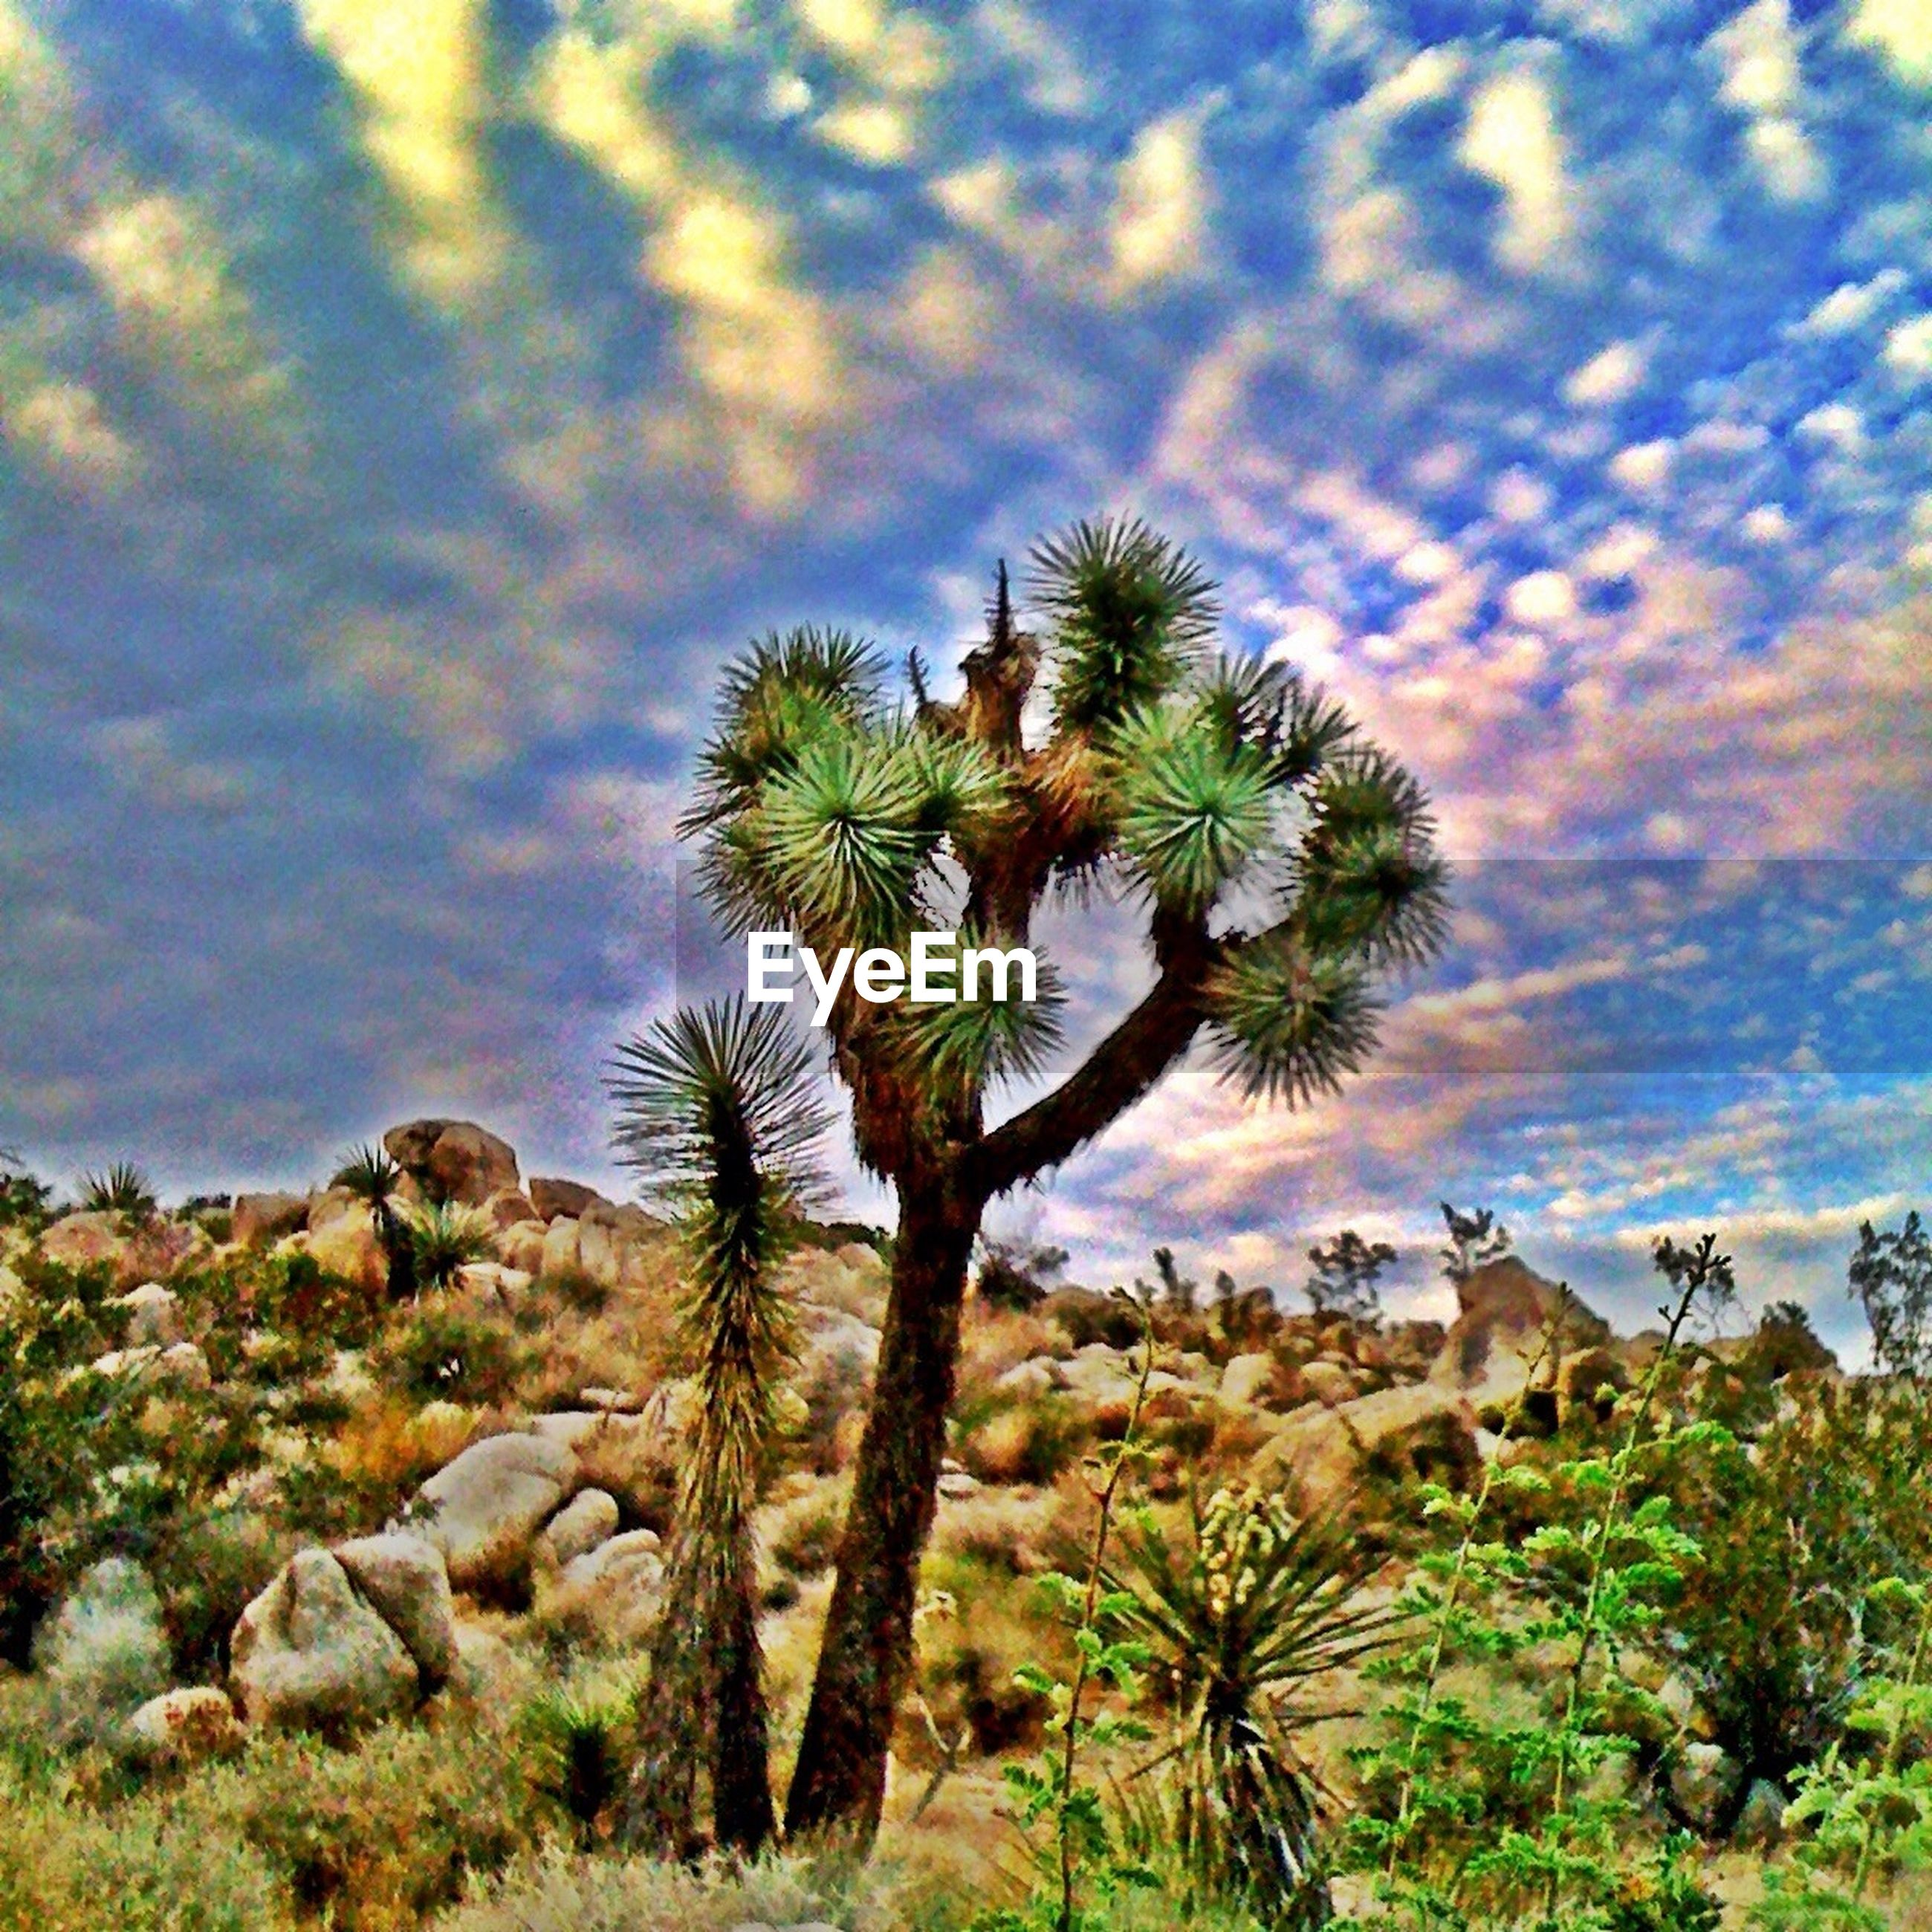 sky, tree, palm tree, cloud - sky, tranquility, tranquil scene, scenics, nature, beauty in nature, cloud, growth, cloudy, rock - object, landscape, green color, rock formation, plant, idyllic, non-urban scene, outdoors